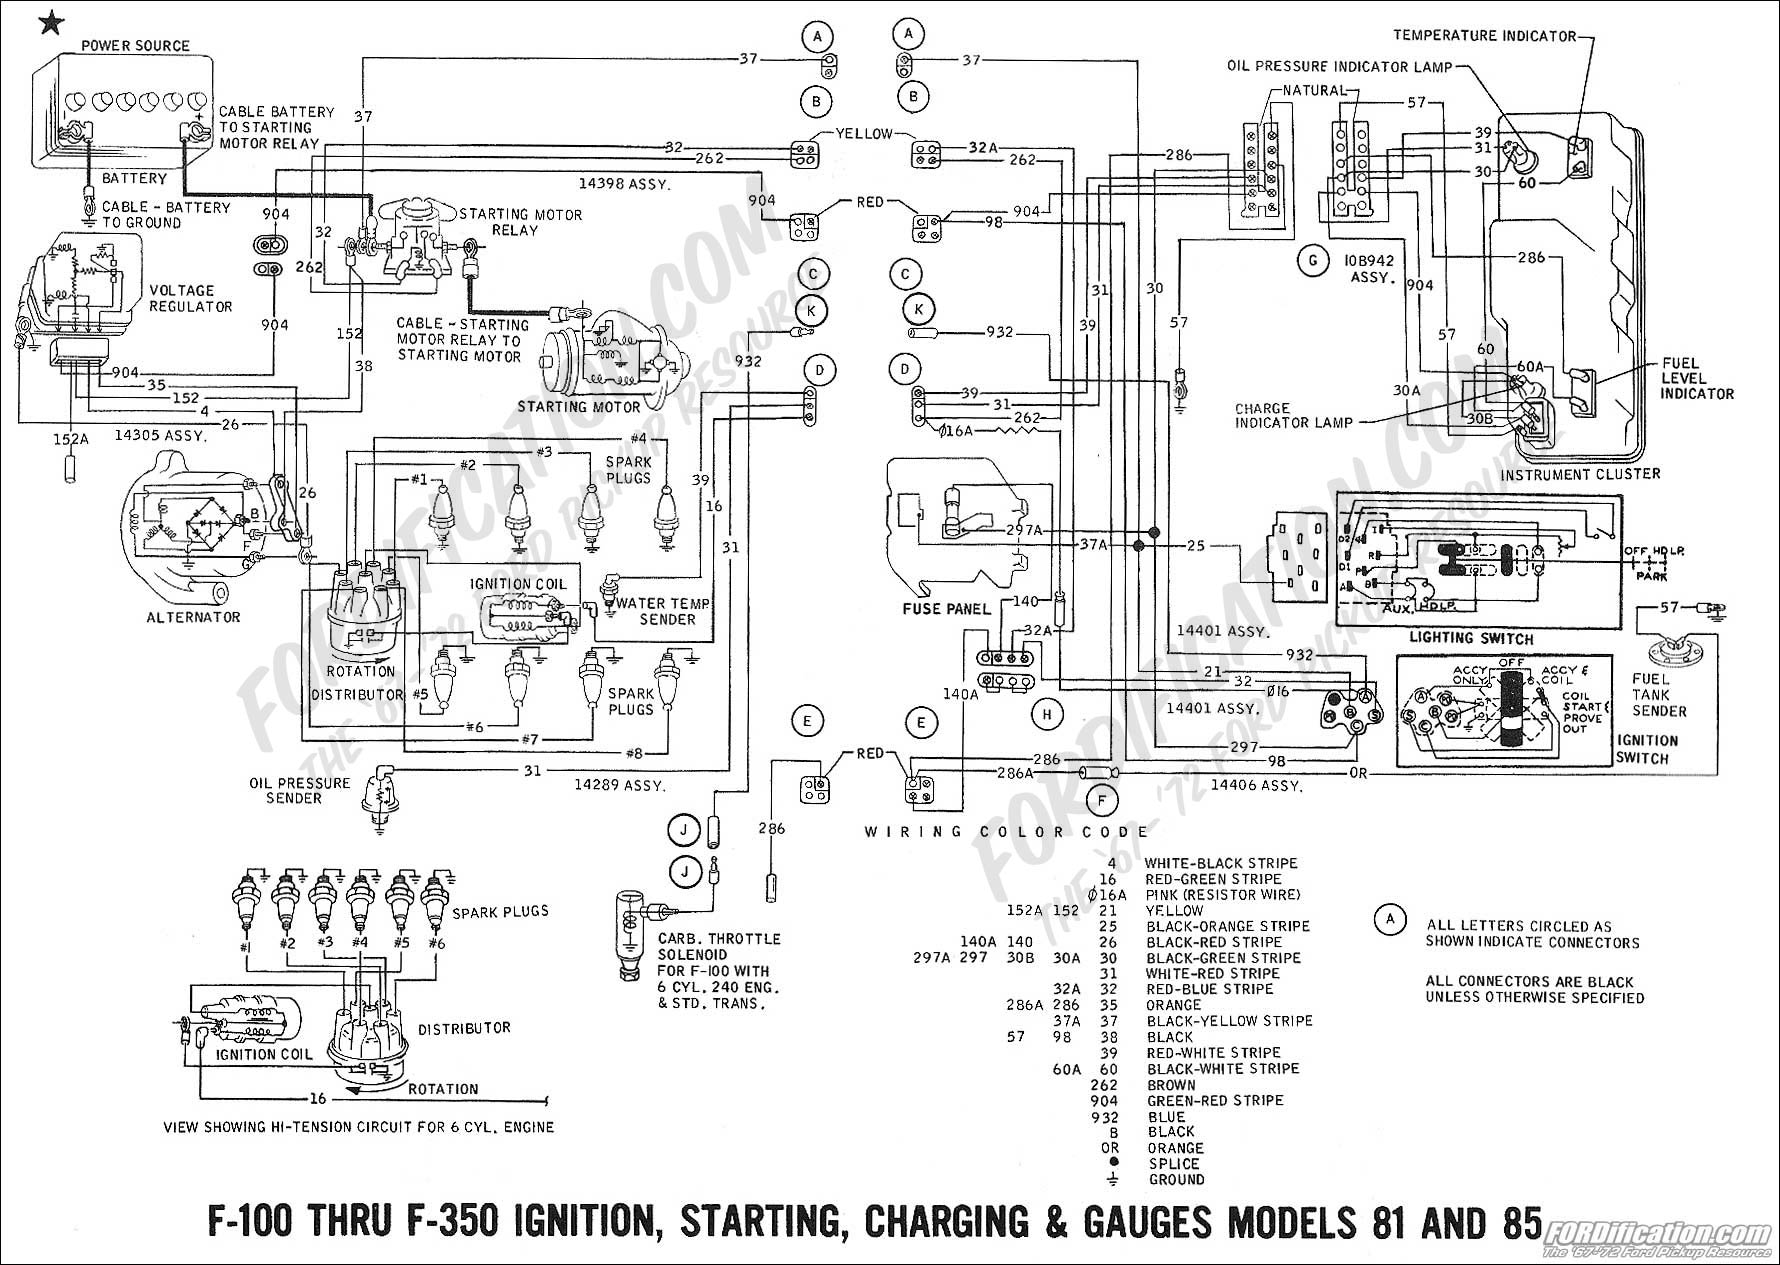 1972 F250 Wiring Diagram Manual E Books 1999 Honda Odyssey Radio Ford Headlight Plug Diagram1967 F 100 240